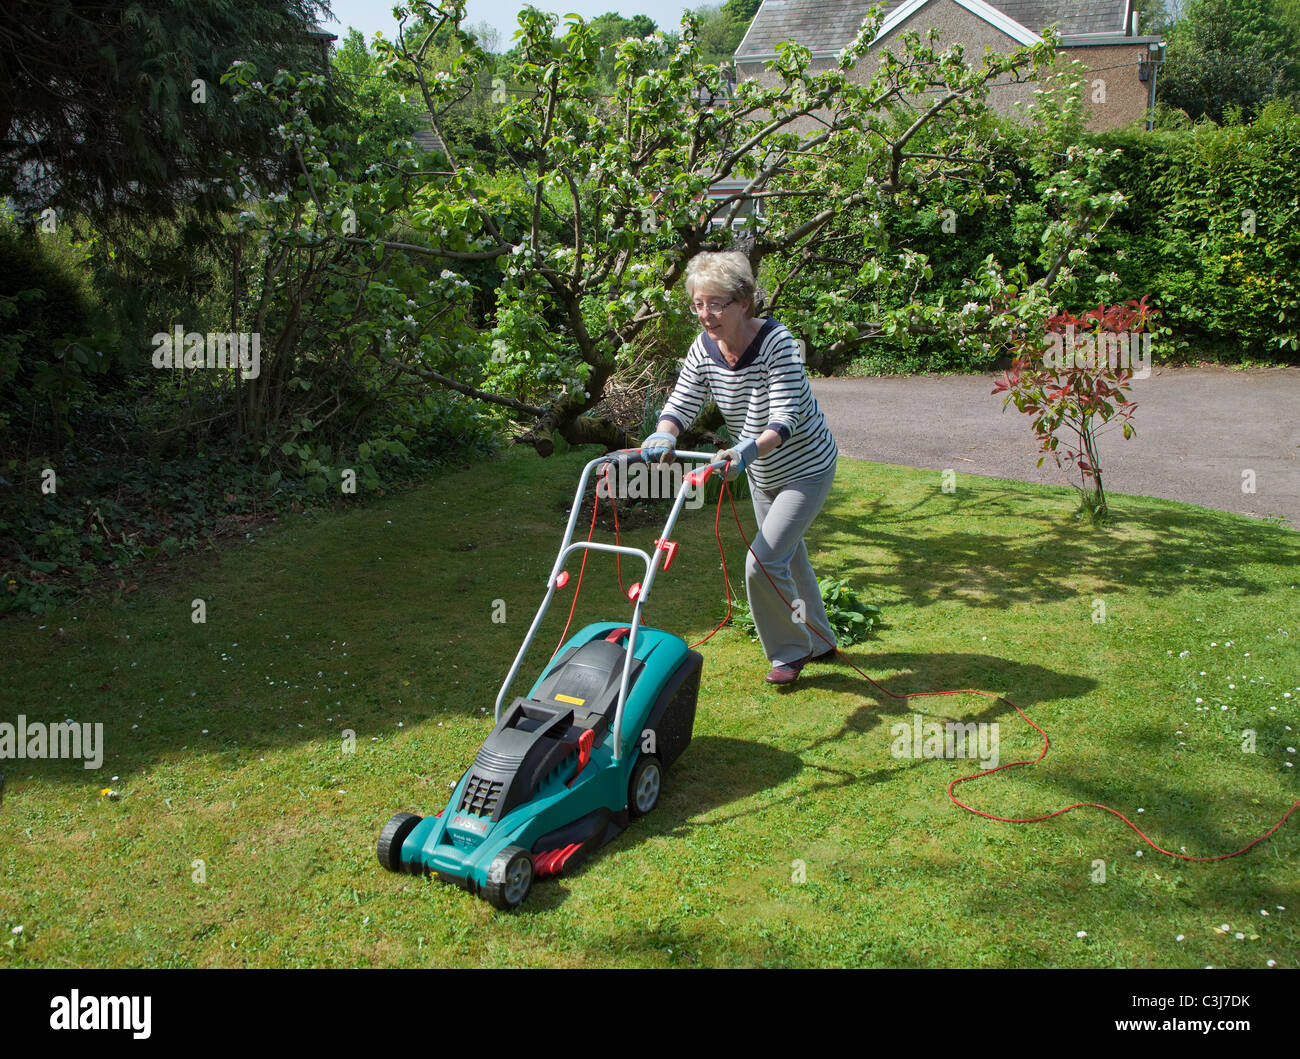 OLDER WOMAN MOWING LAWN WITH ELECTRIC MOWER UK - Stock Image